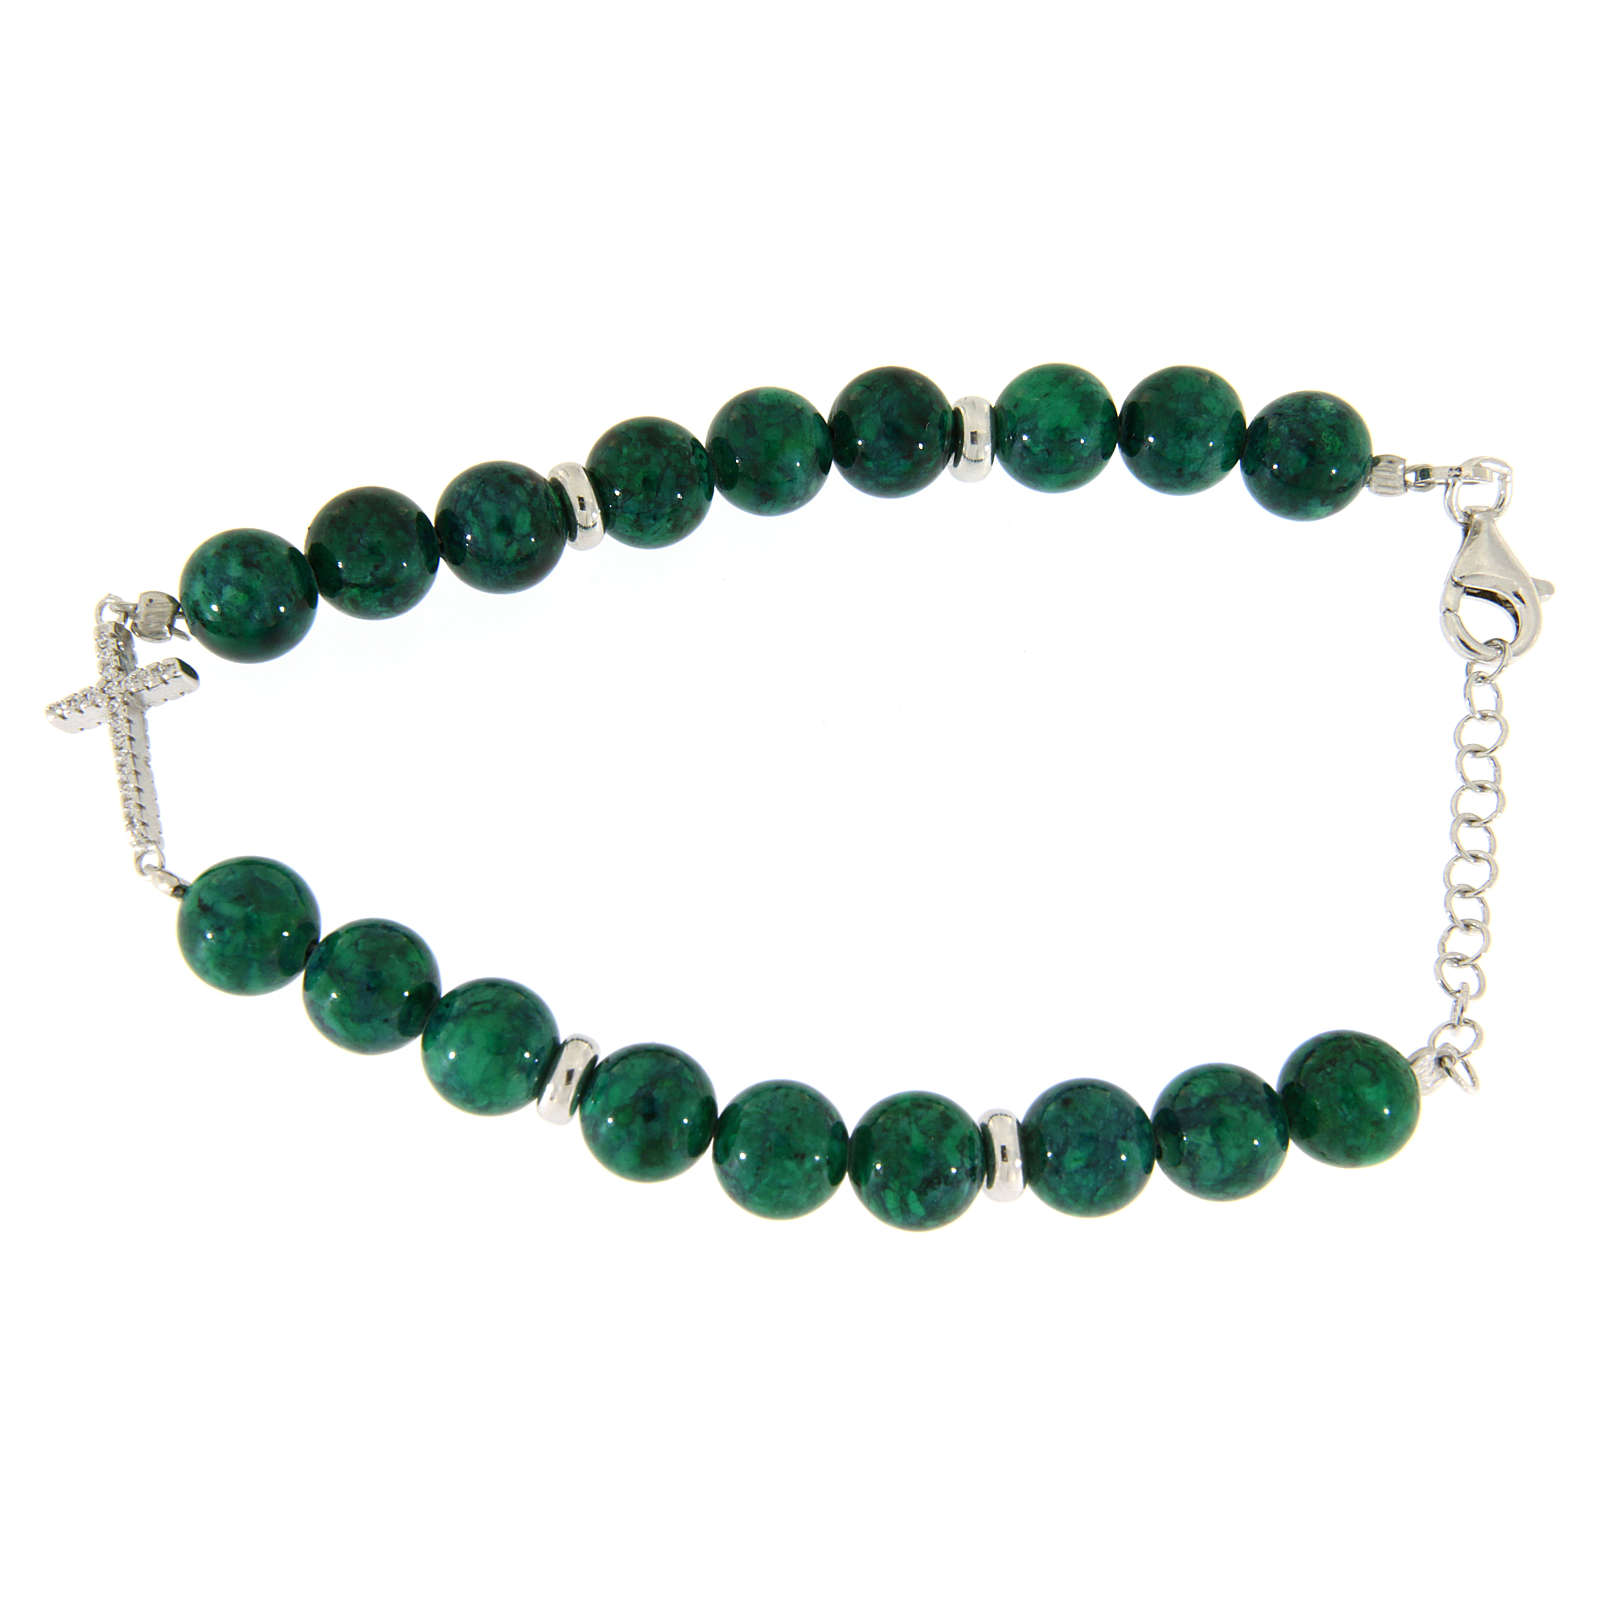 Bracciale perline resina verdi simil malachite 7 mm e croce zirconi bianchi 4